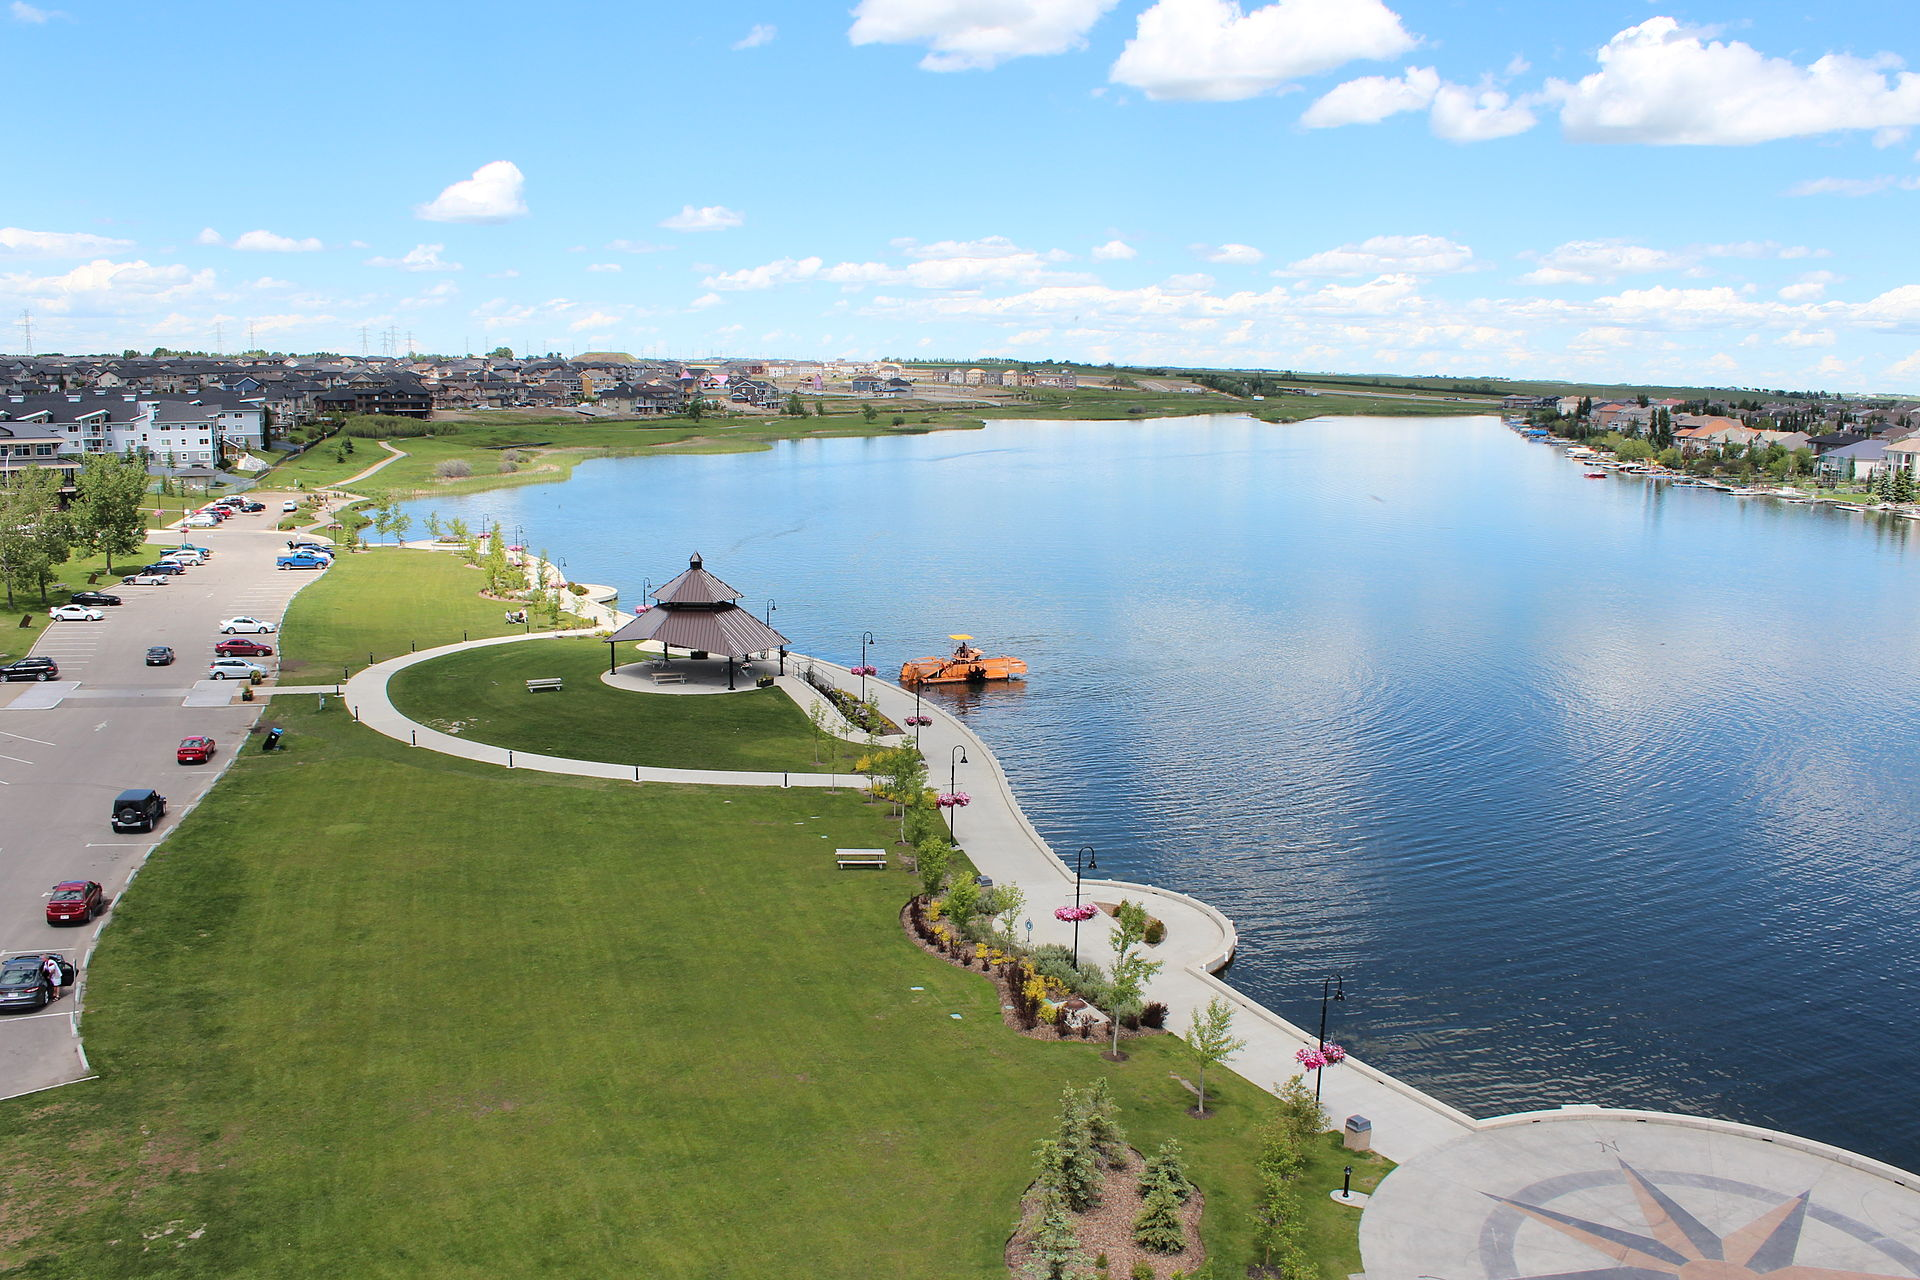 chestermere alberta newspaper Our latest news, workshops & events check it out  #213, 100 rainbow road,  chestermere alberta t1x ov2 canada  1-587-573-9642 info@yourpeakca.